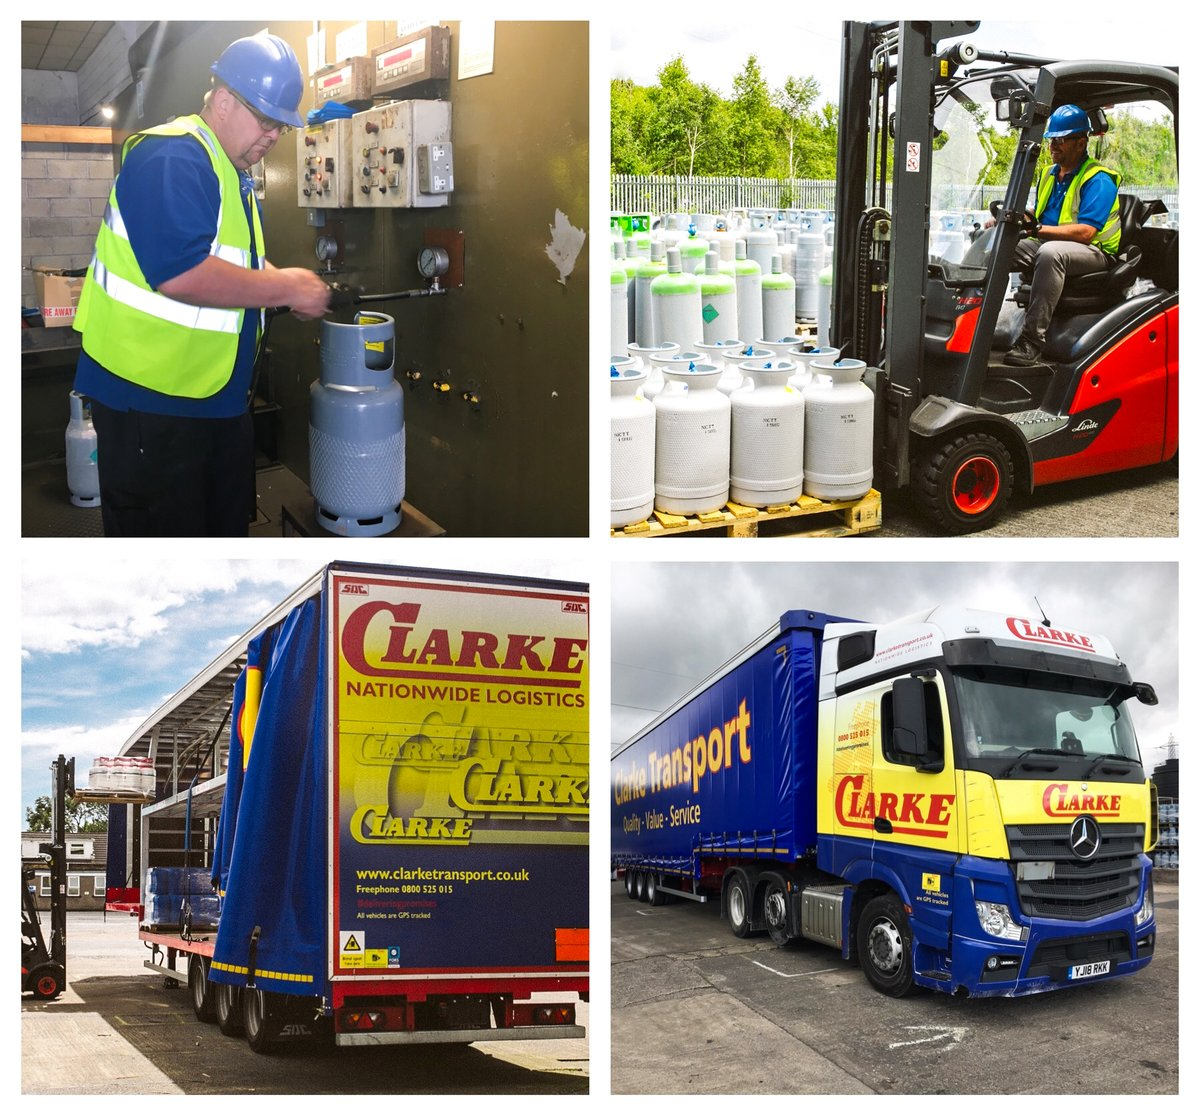 A shout out to all the hard working #HGV drivers and #Transport workers who have been busy making essential deliveries during the lockdown. The team @CLARKETRANSPORT have been safely filling, packing and delivering hazardous freight products to customers. #HaulageHerospic.twitter.com/dikREjPTPU